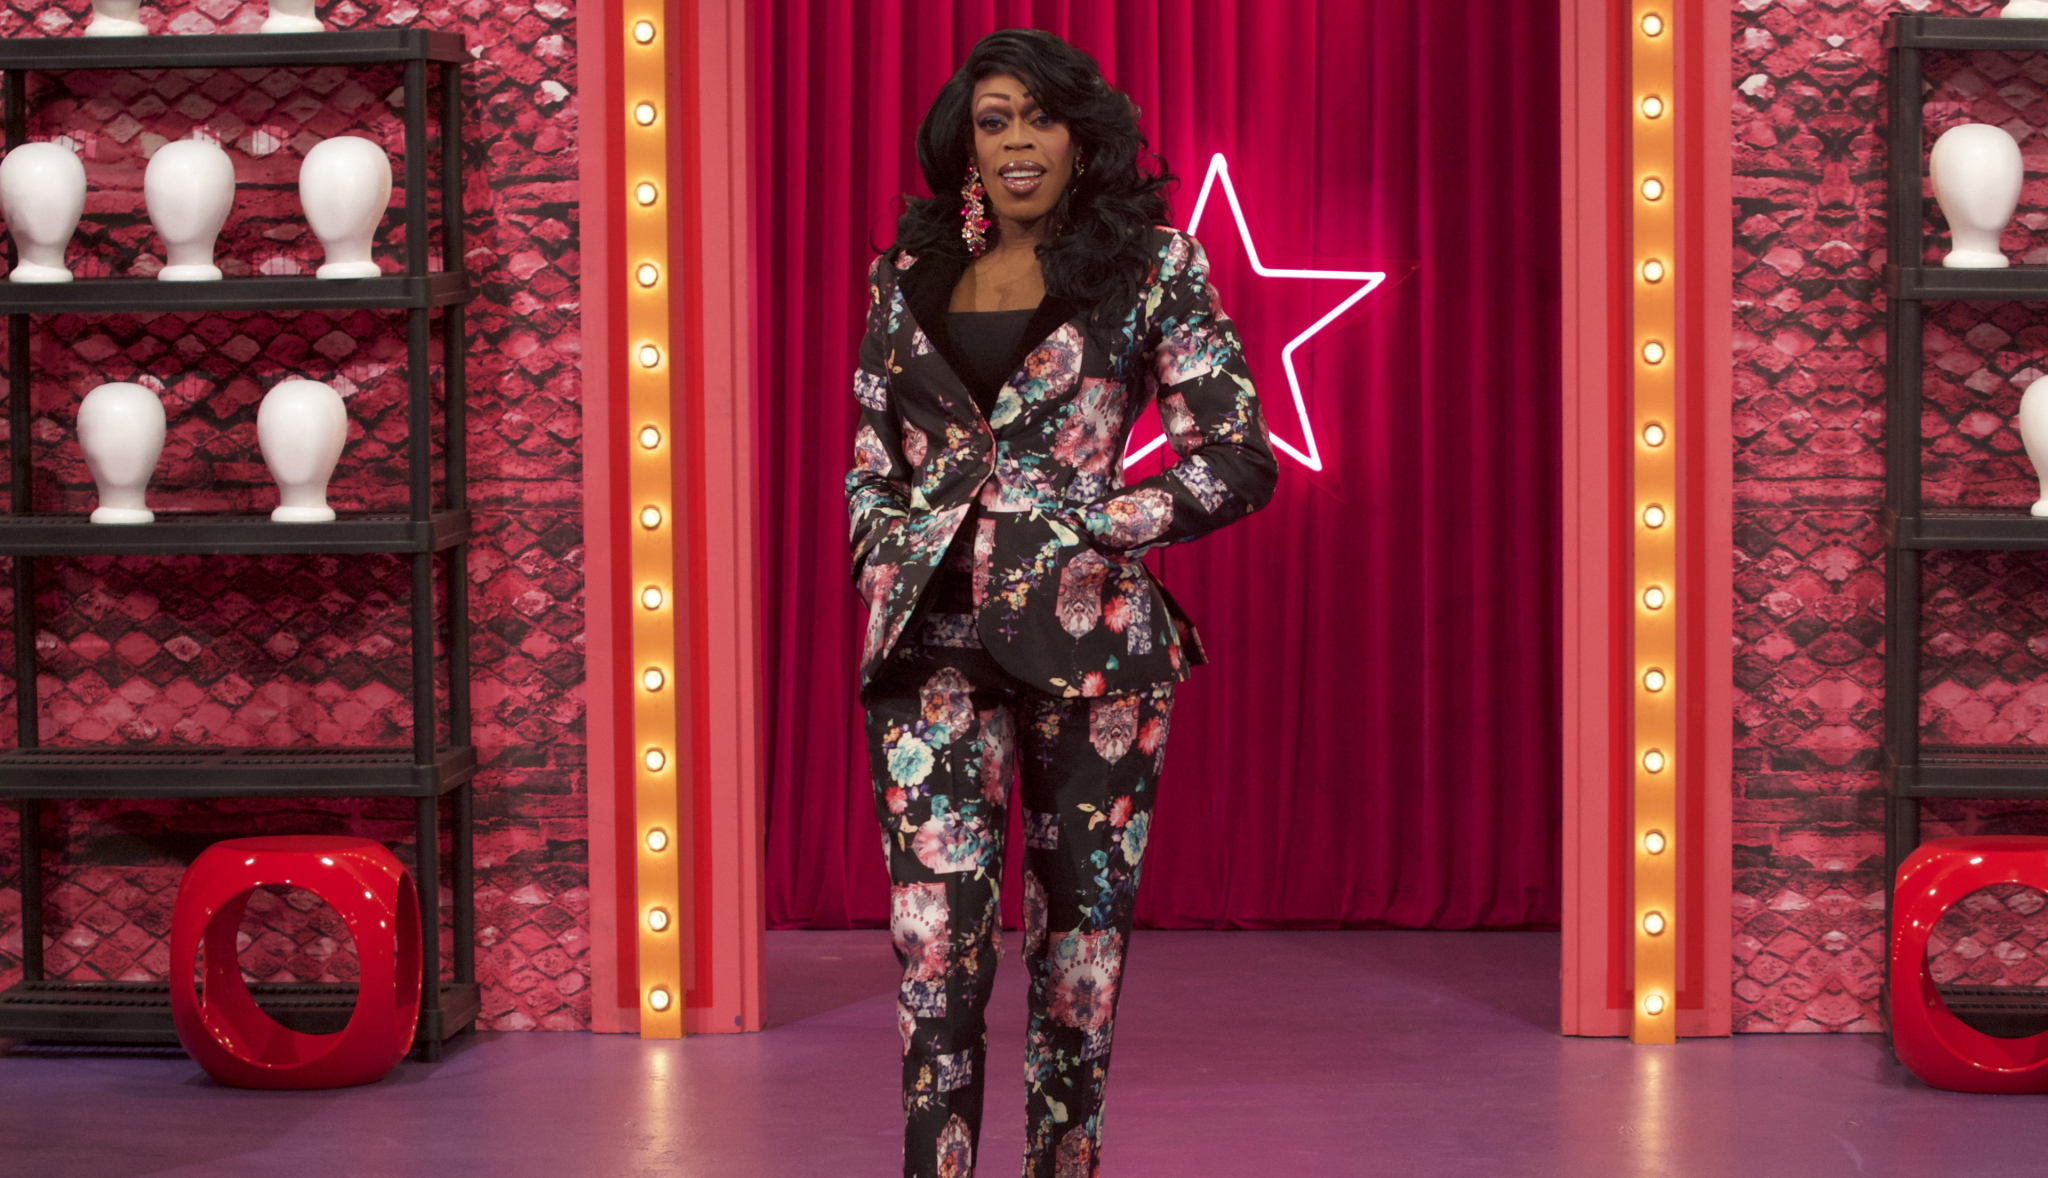 Jasmine Masters Christmas 2020 Jasmine Masters has something to say about 'RuPaul's Drag Race All